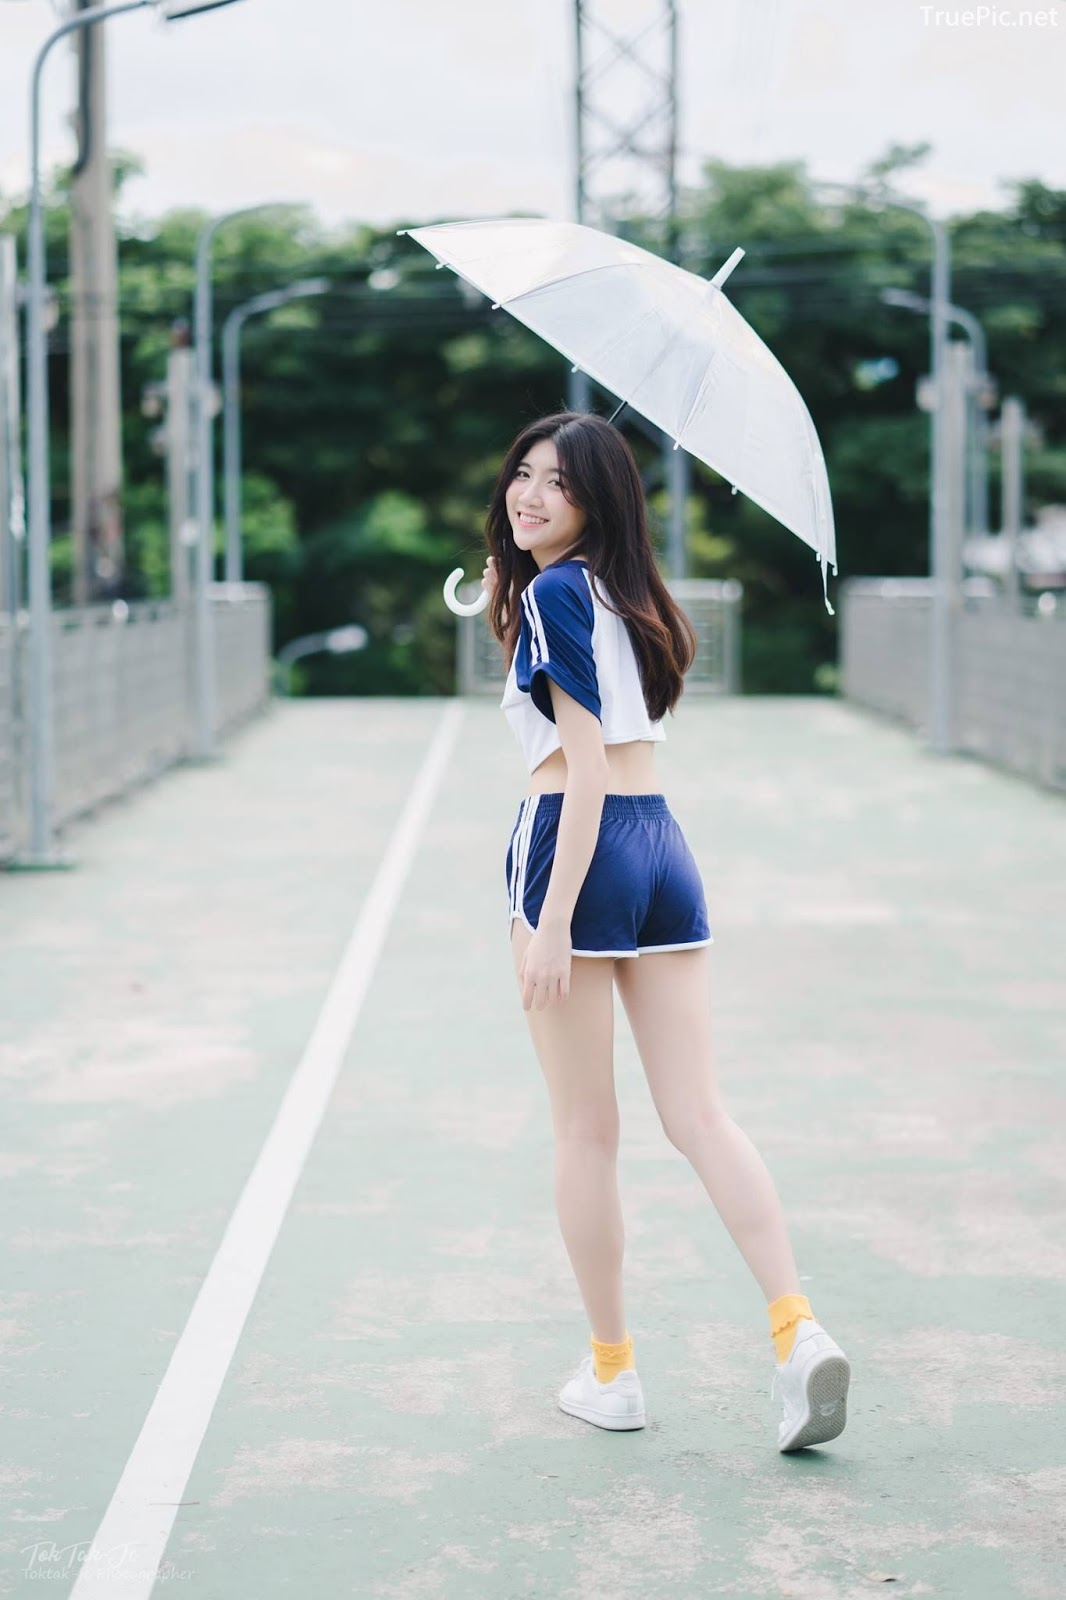 Hot Girl Thailand - Sasi Ngiunwan - Scenes From an Empty City - TruePic.net - Picture 4